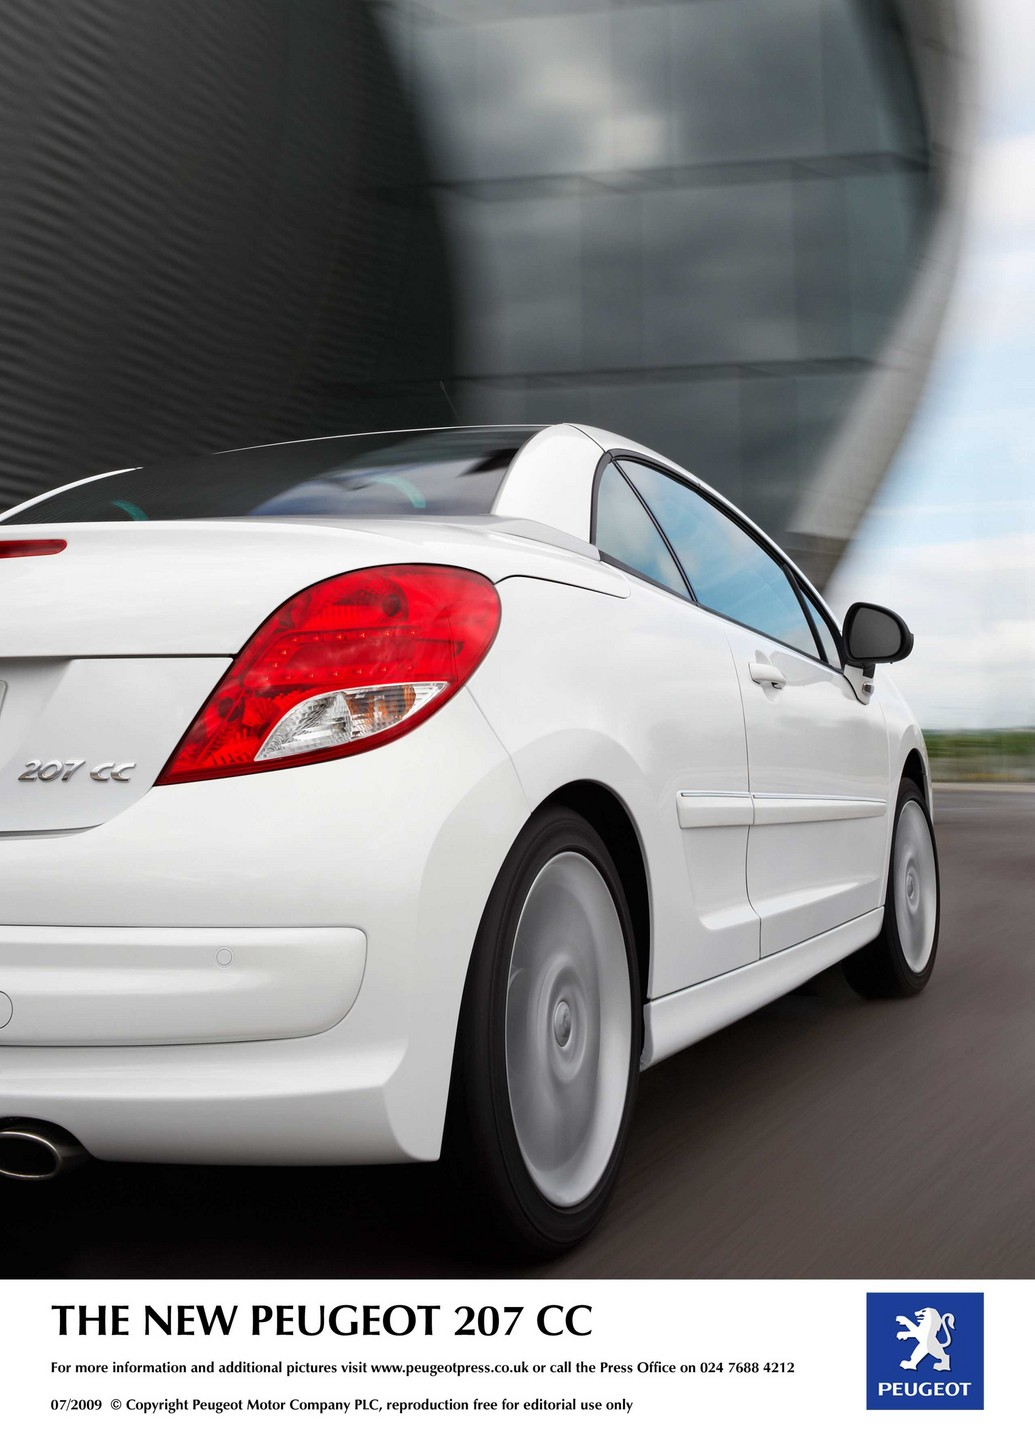 2011 peugeot 207 cc photos price reviews specifications. Black Bedroom Furniture Sets. Home Design Ideas